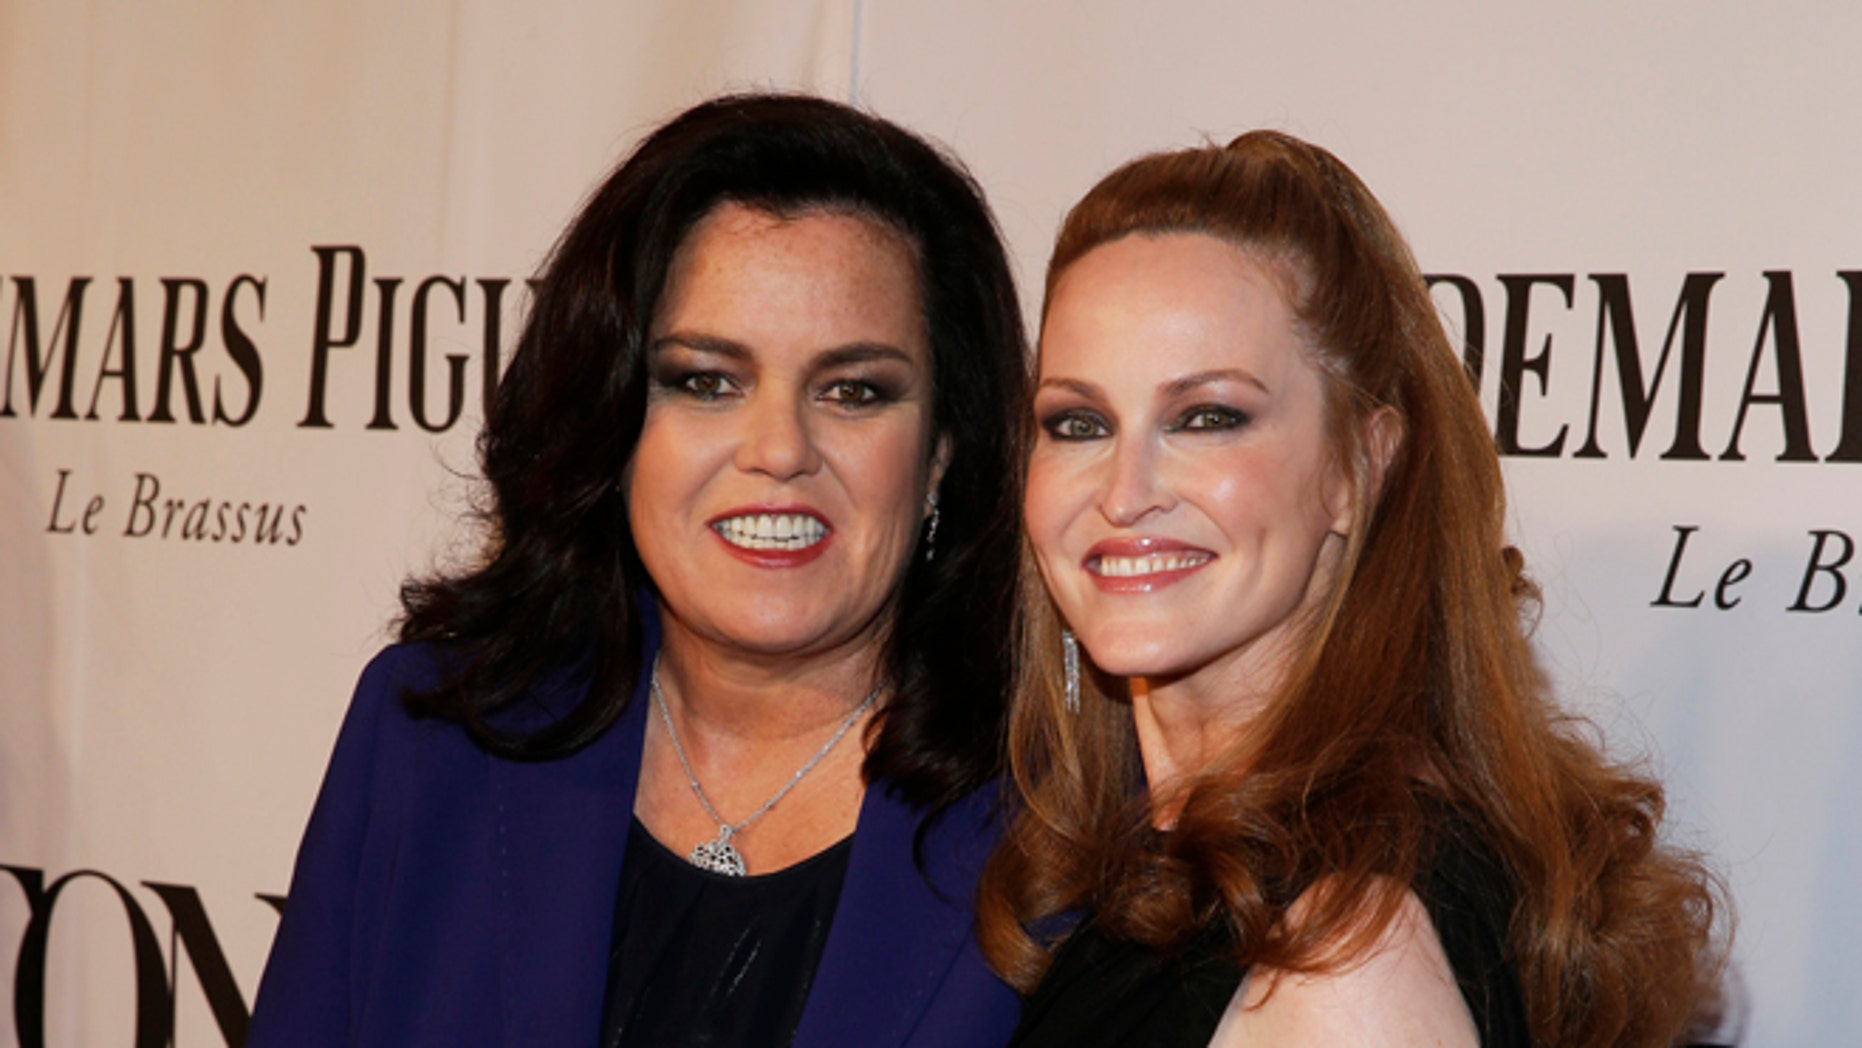 June 8, 2014. Rosie O'Donnell (L) and Michelle Rounds arrive for the American Theatre Wing's 68th annual Tony Awards at Radio City Music Hall in New York.